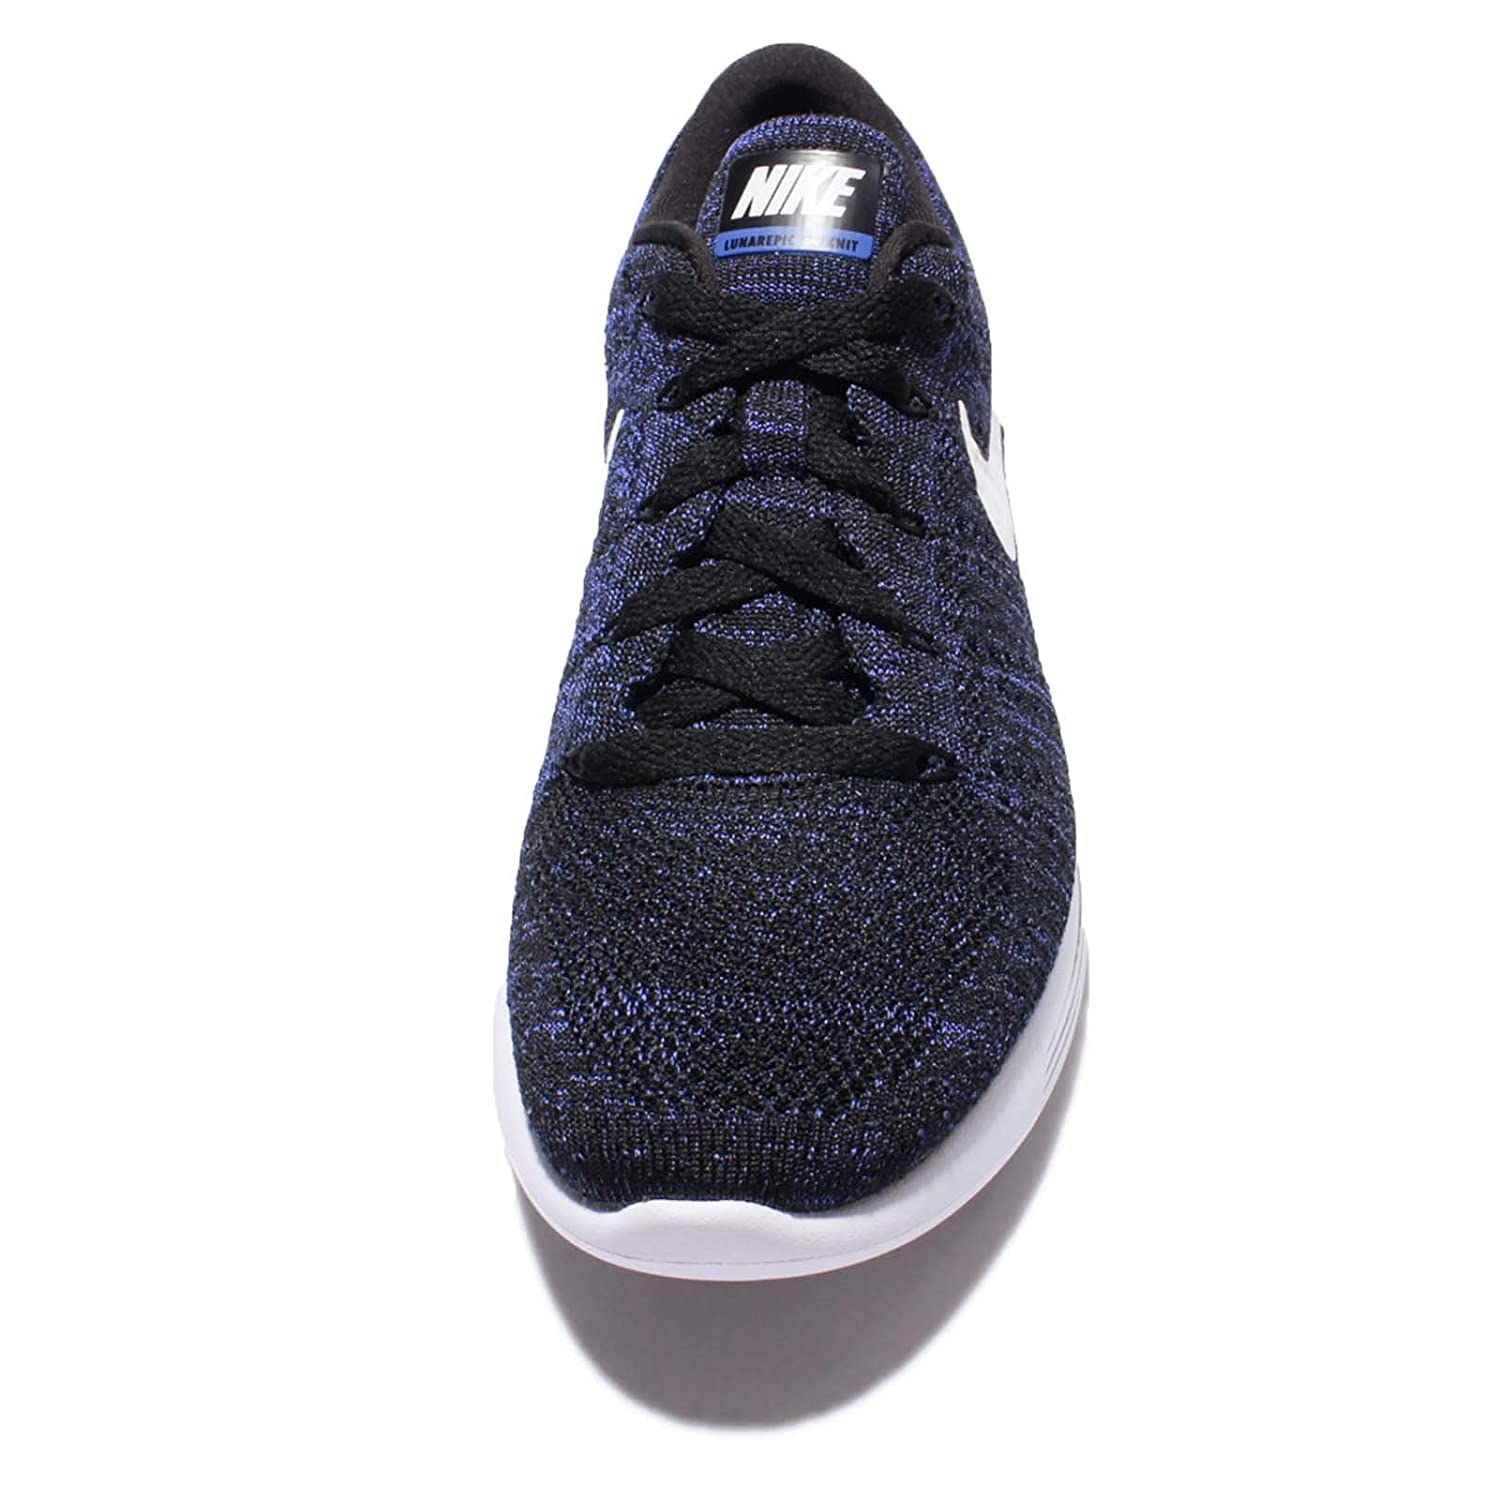 competitive price a4b90 ea13c ... sweden lav joggesko flyknit kvinners nike lunarepic eqwaau 4b4e6 7502d